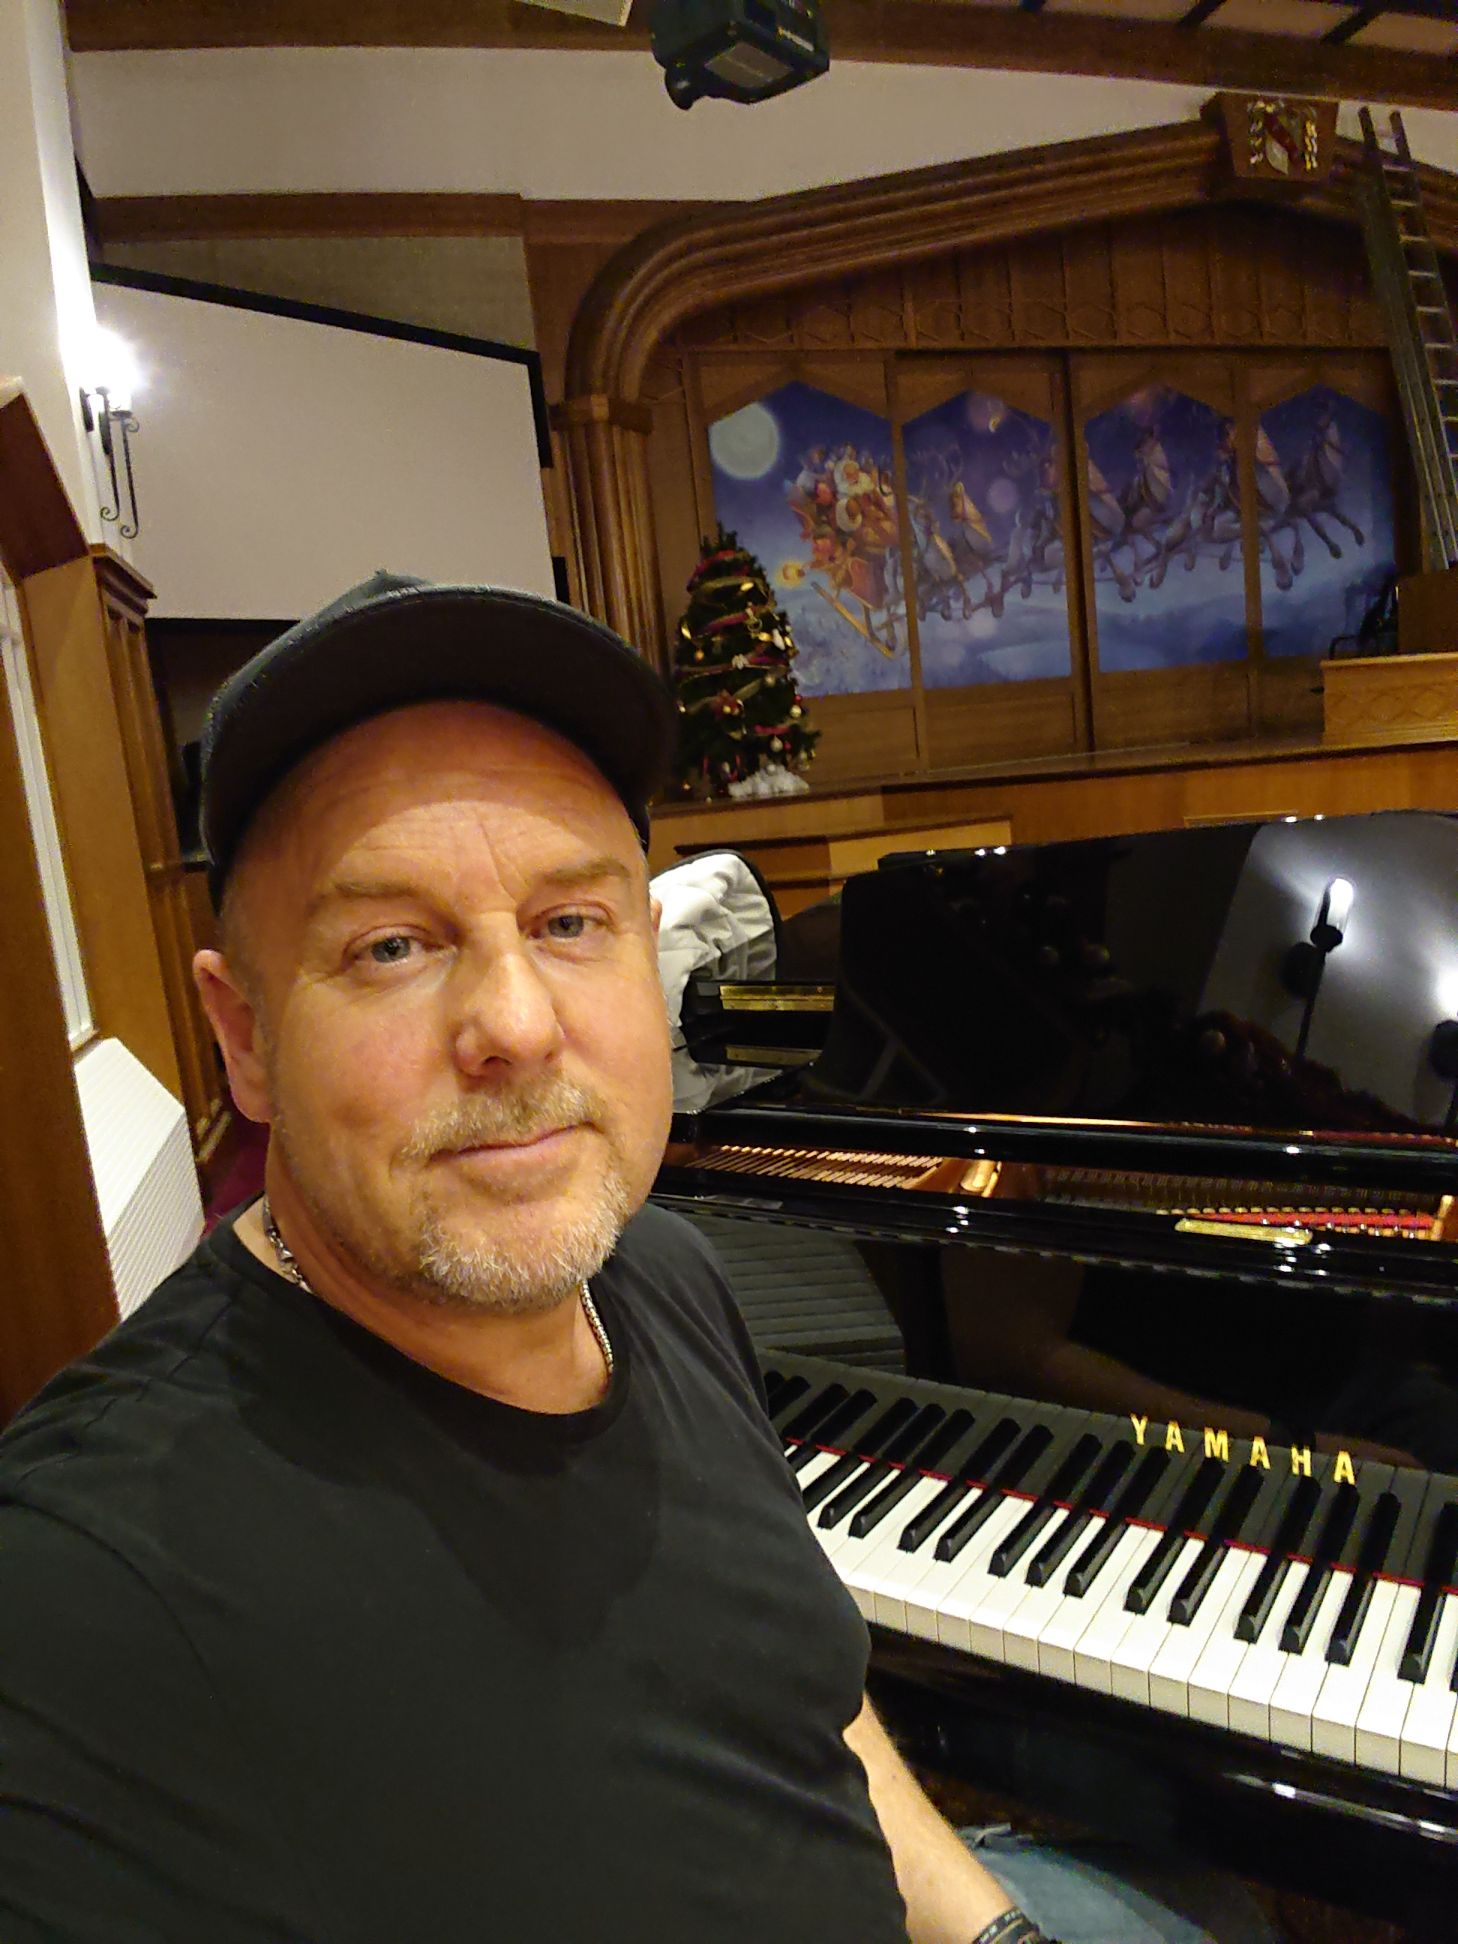 working on my piano and vocal set at Saint HillChristmas 2018